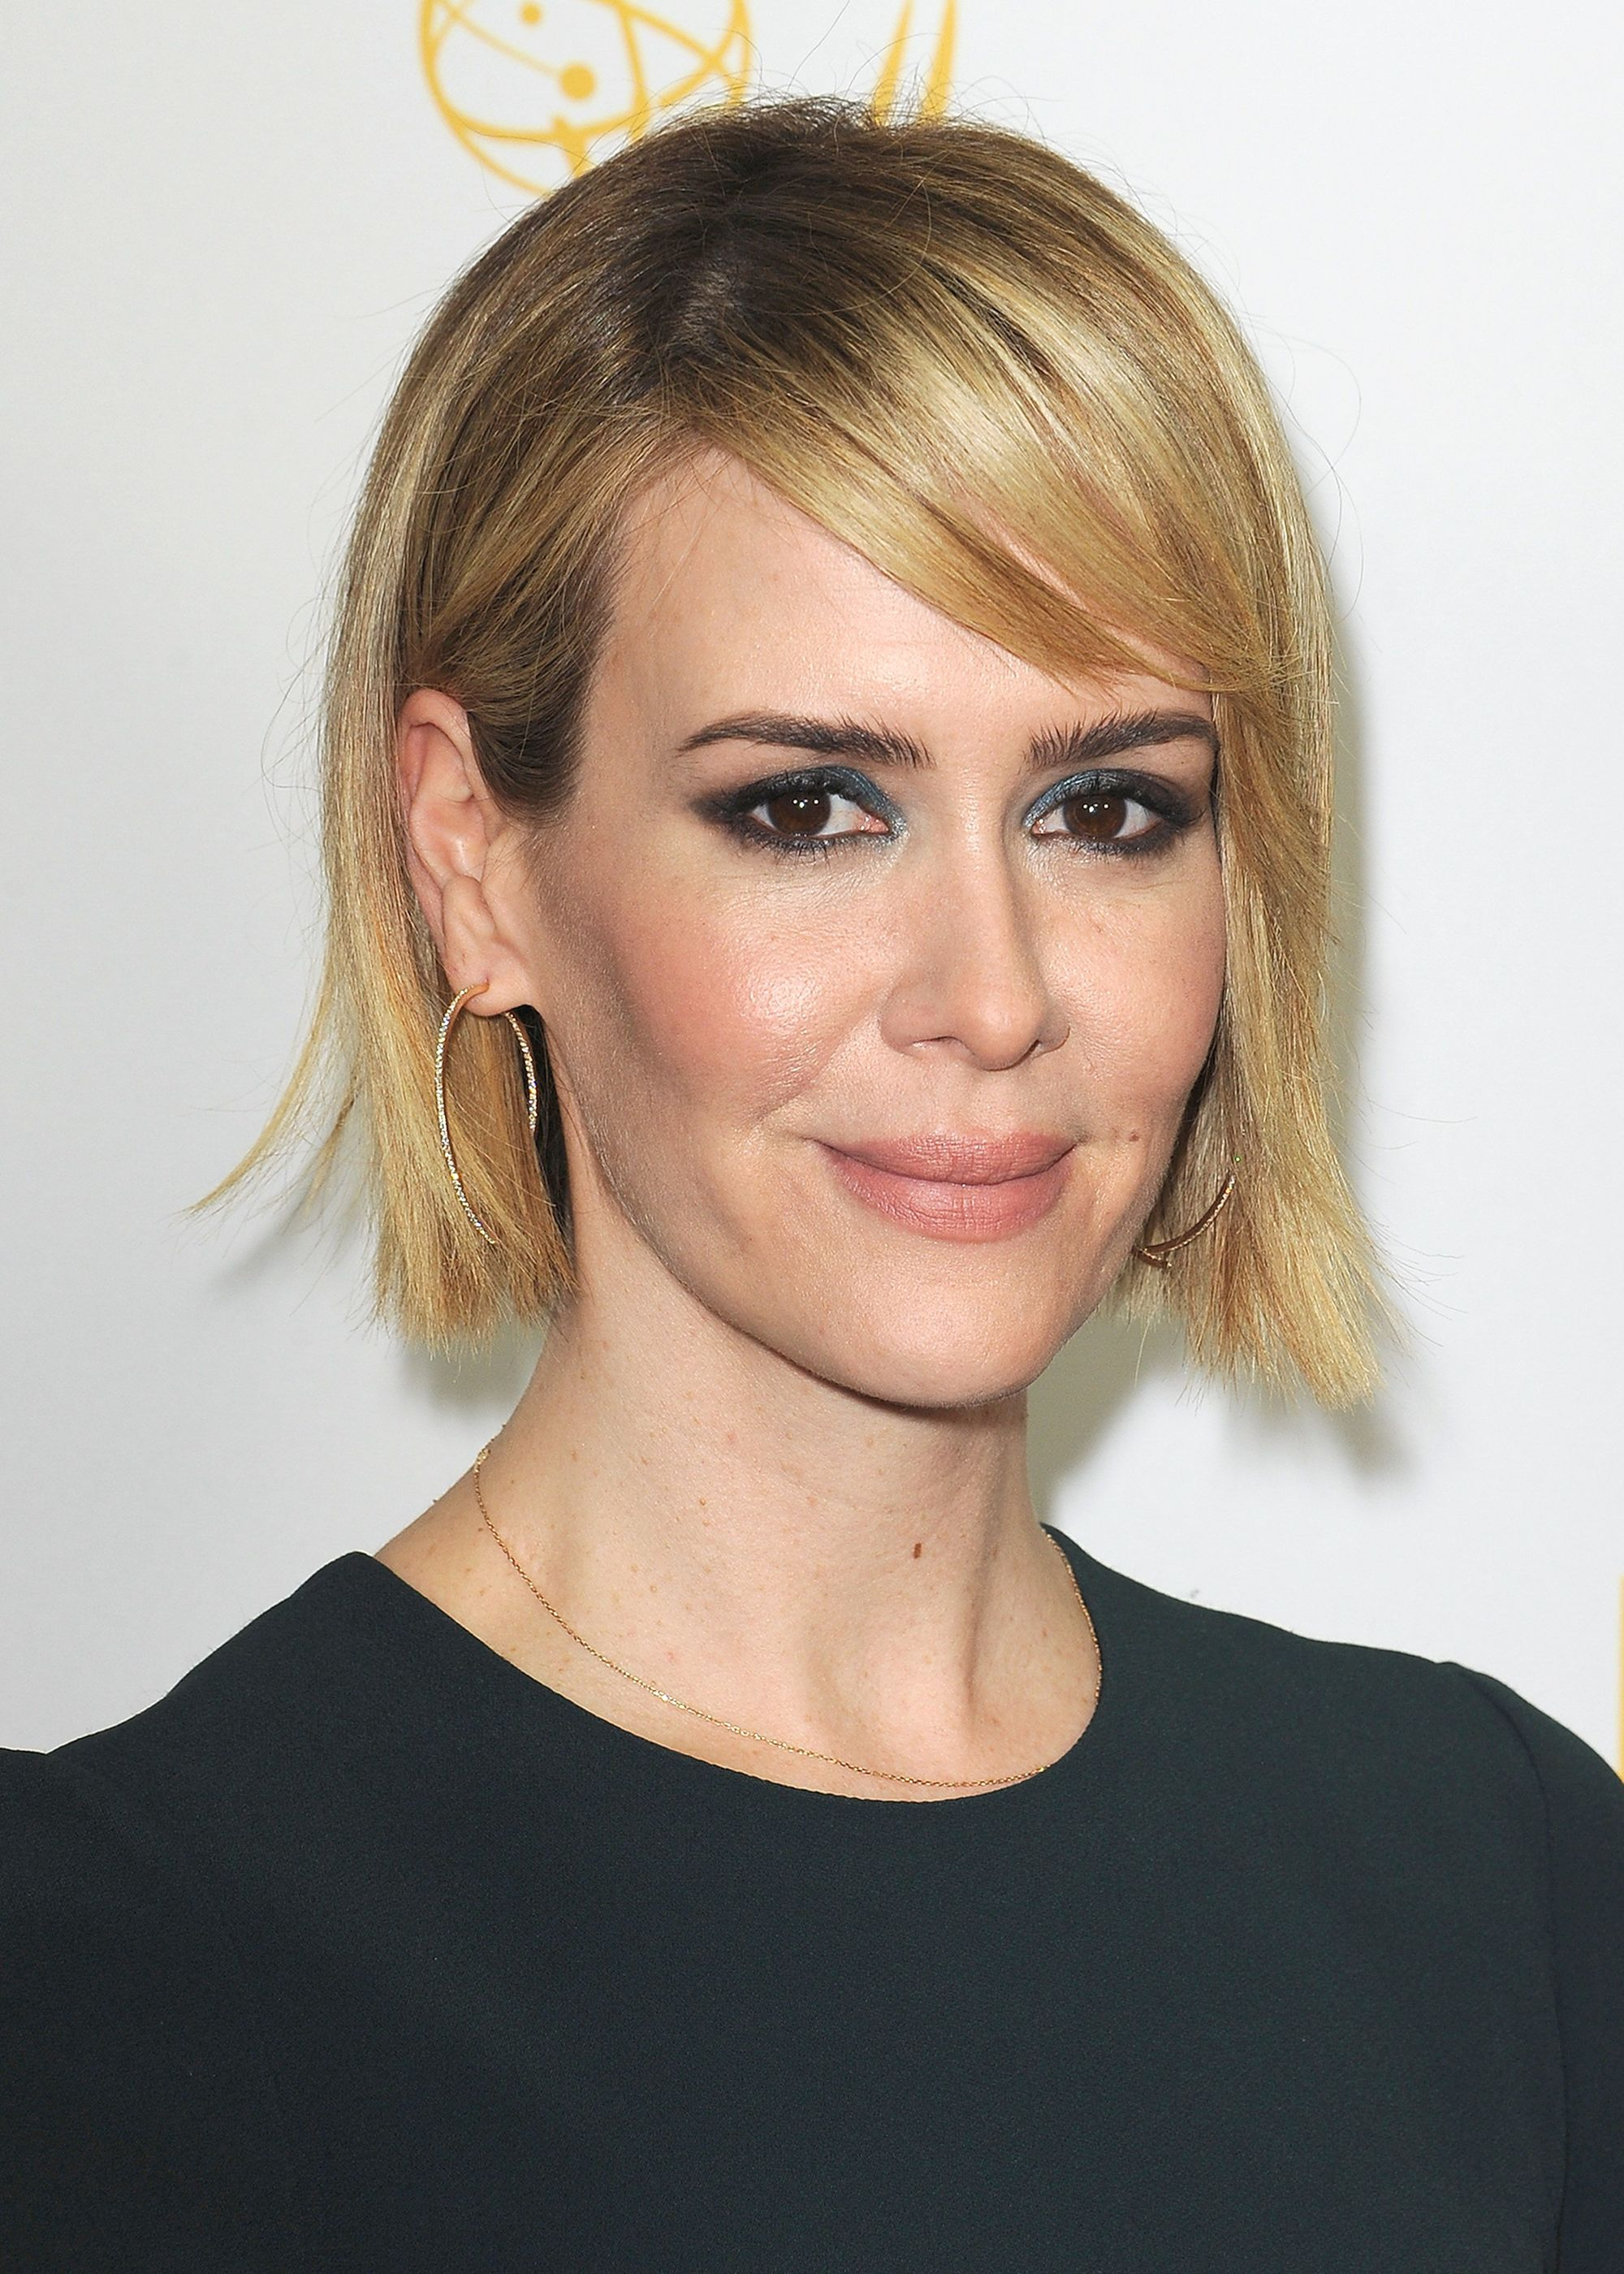 13 haircuts for fine straight hair from short bobs to long styles | All Things Hair UK